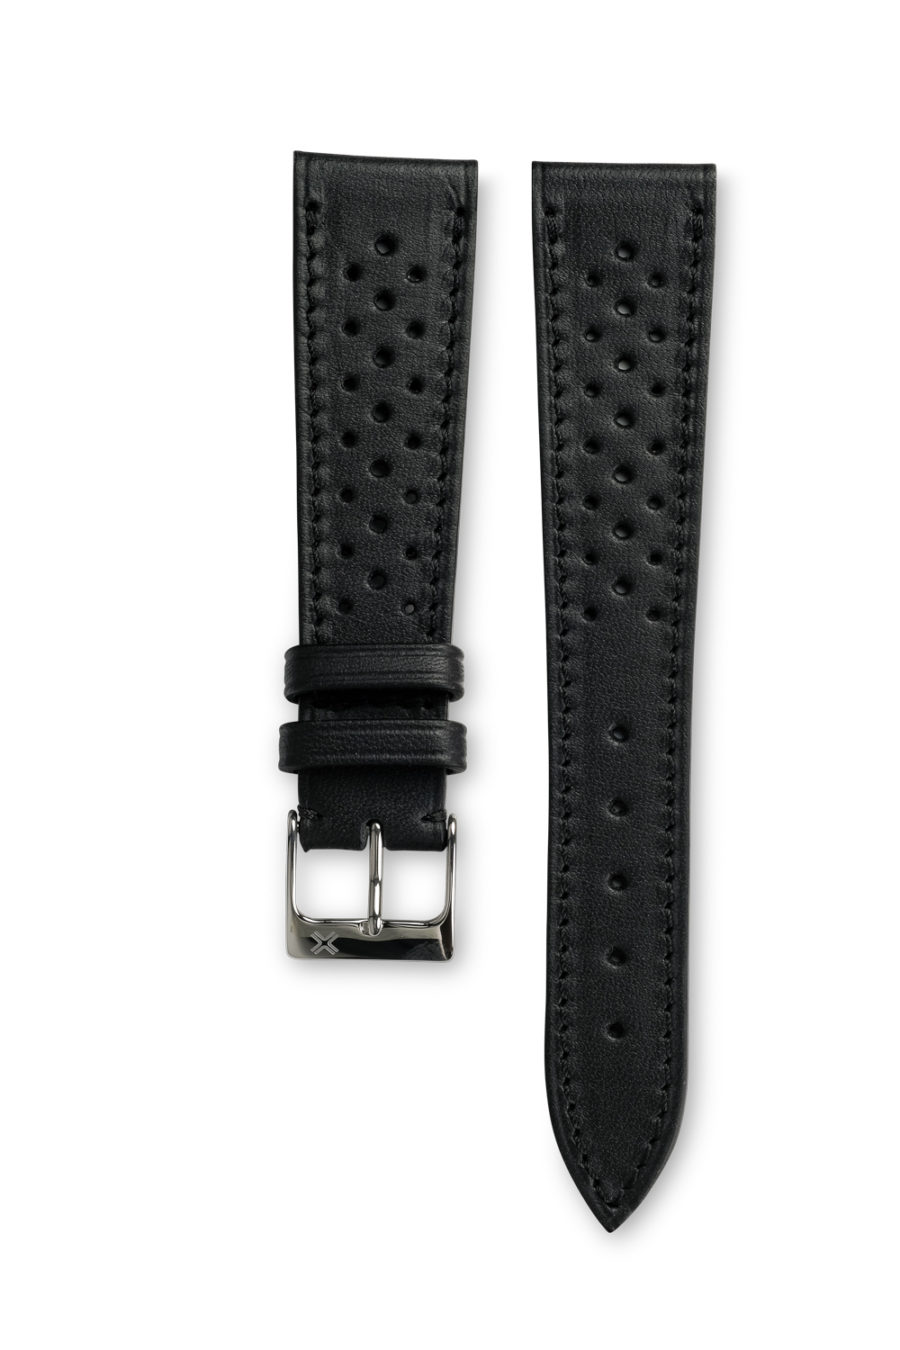 Smooth Racing Barenia deep black leather watch strap - tone on tone stitching - LUGS brand